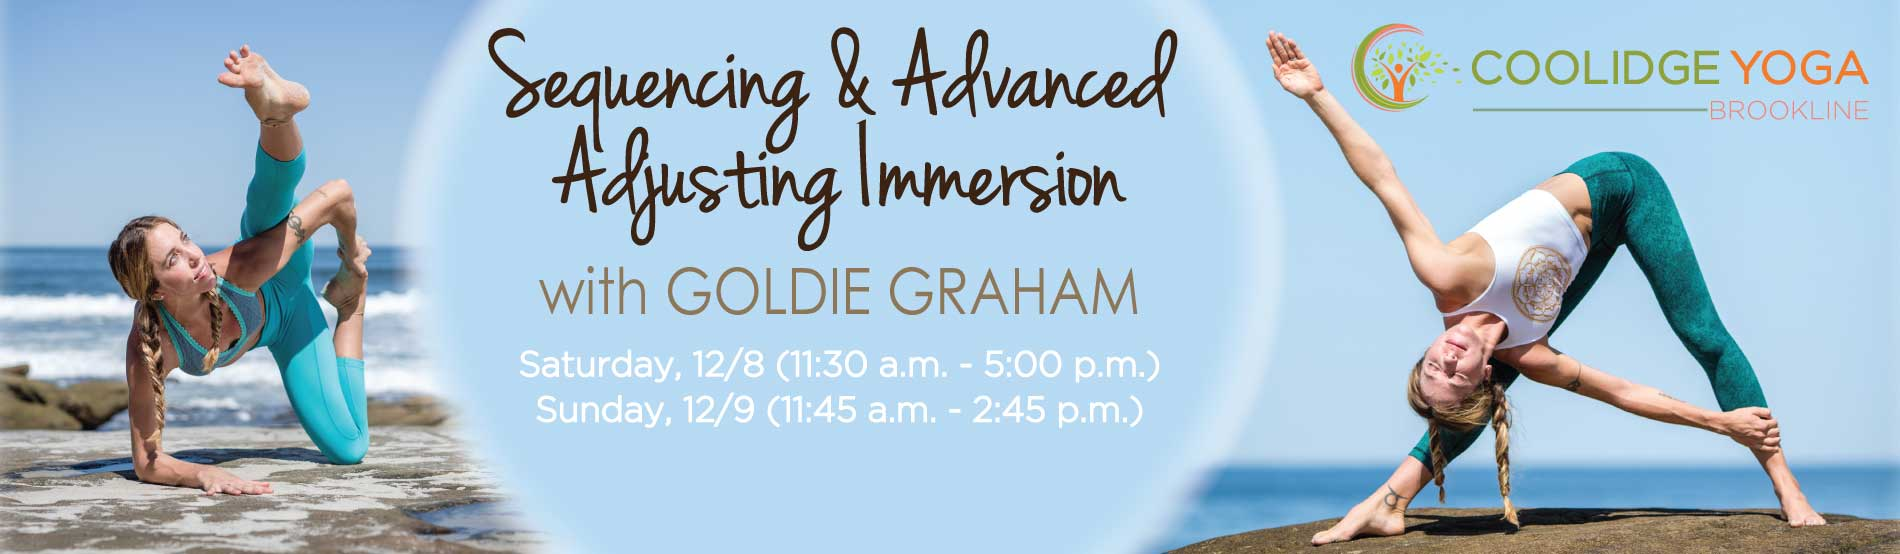 Sequencing & Advanced Adjusting Immersion - with Goldie Graham at Coolidge Yoga